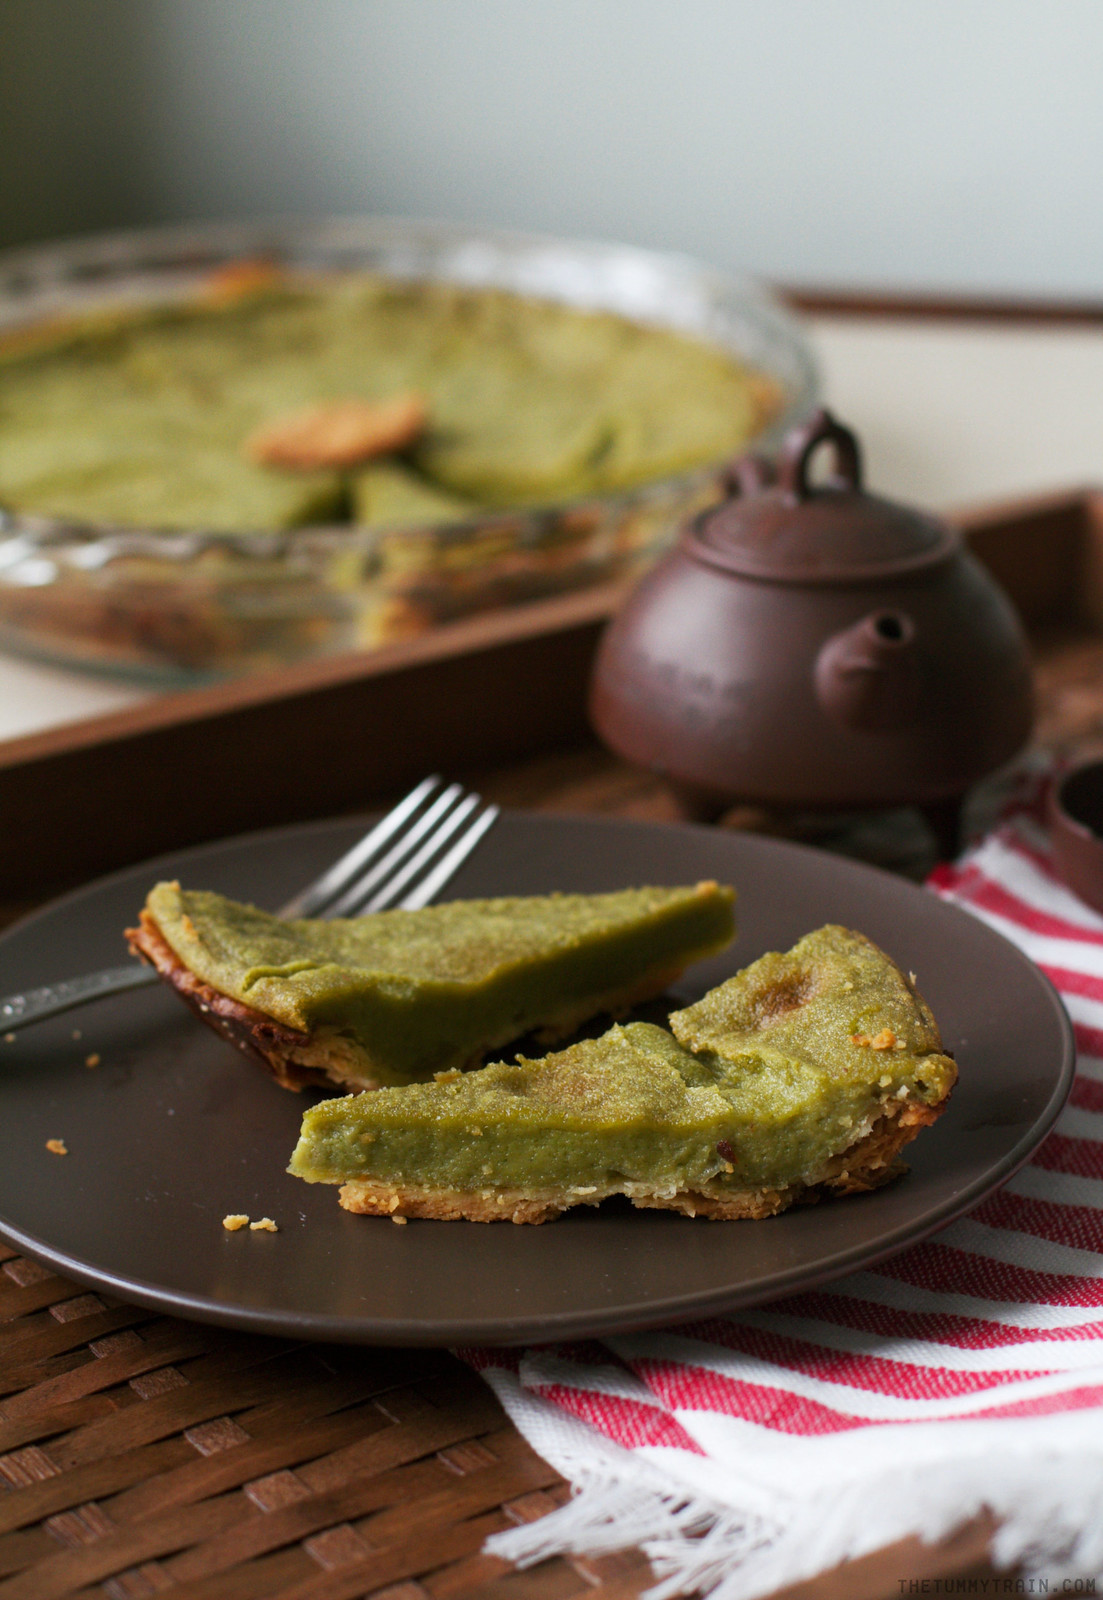 29505609044 232b90bd89 h - Second chance Matcha Pie using Matcha King's Ceremonial Matcha